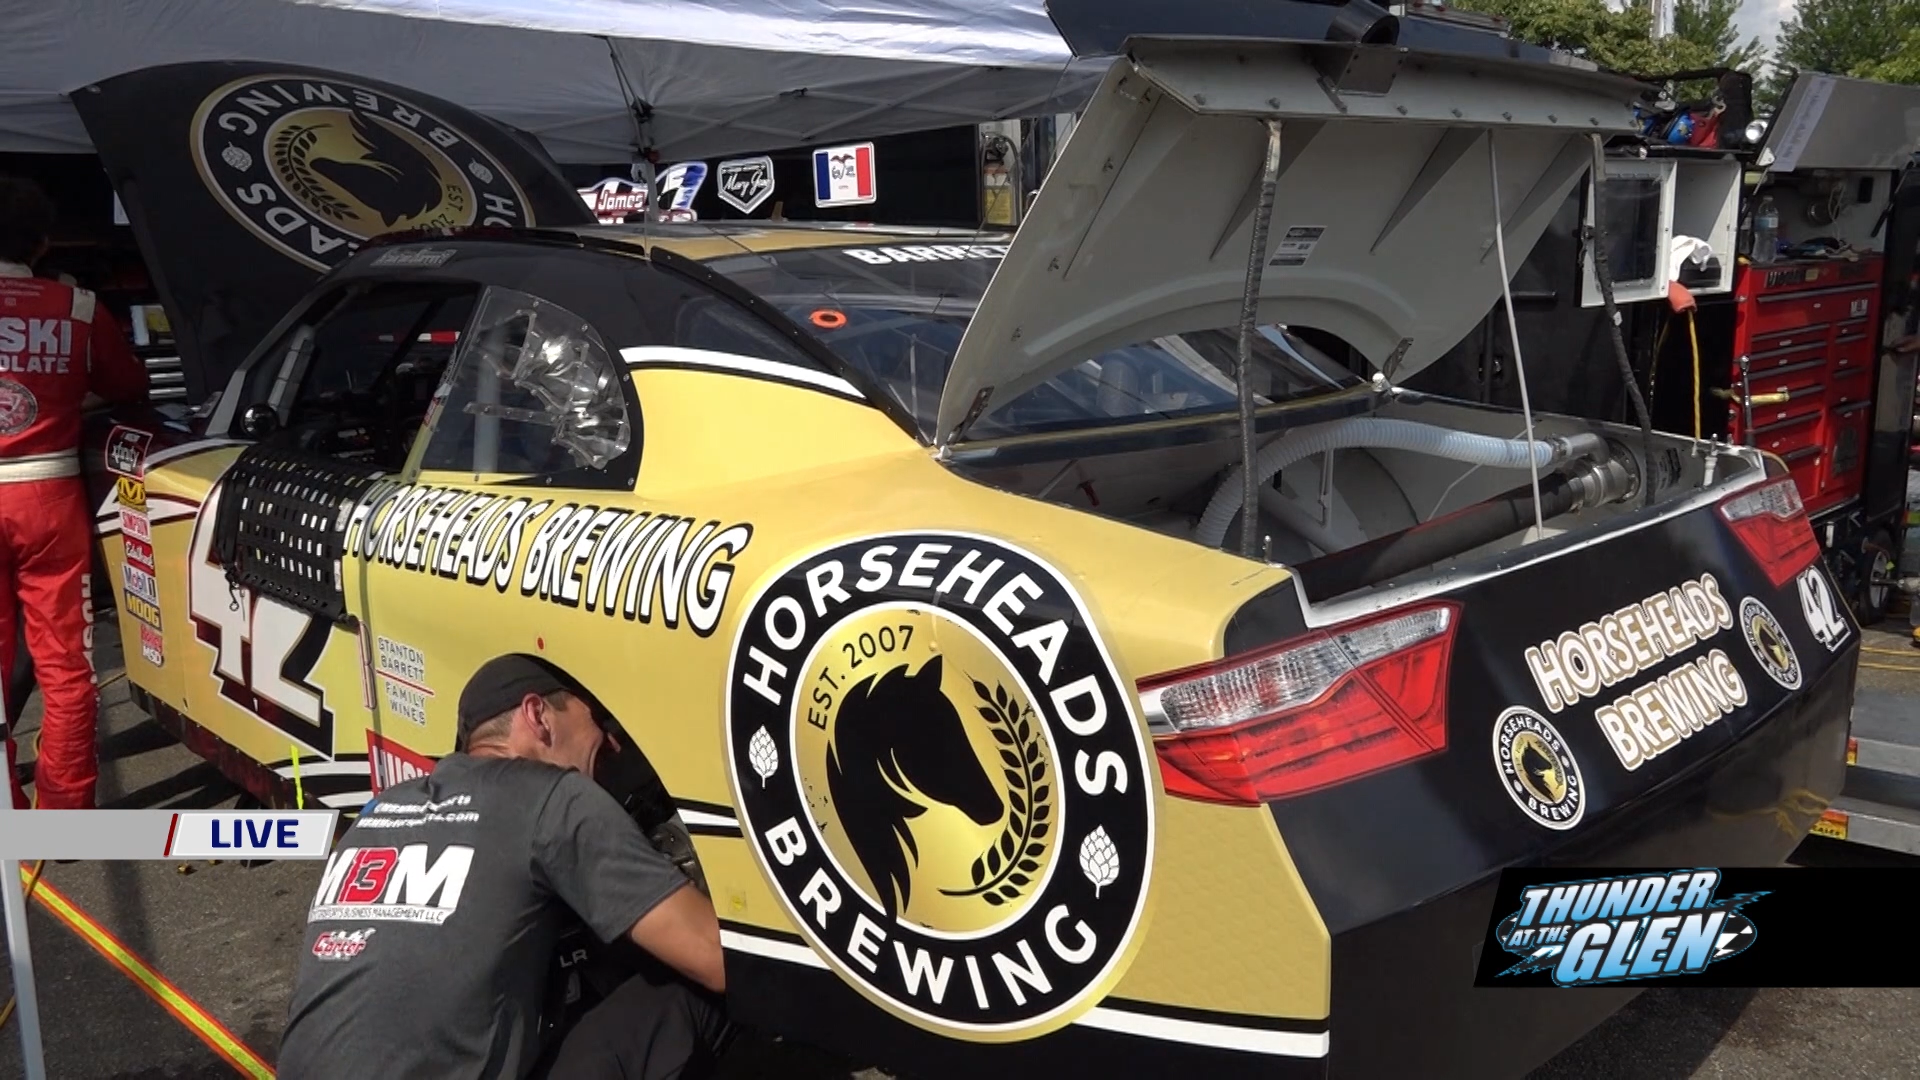 Horseheads Brewing racecar at Watkins Glen